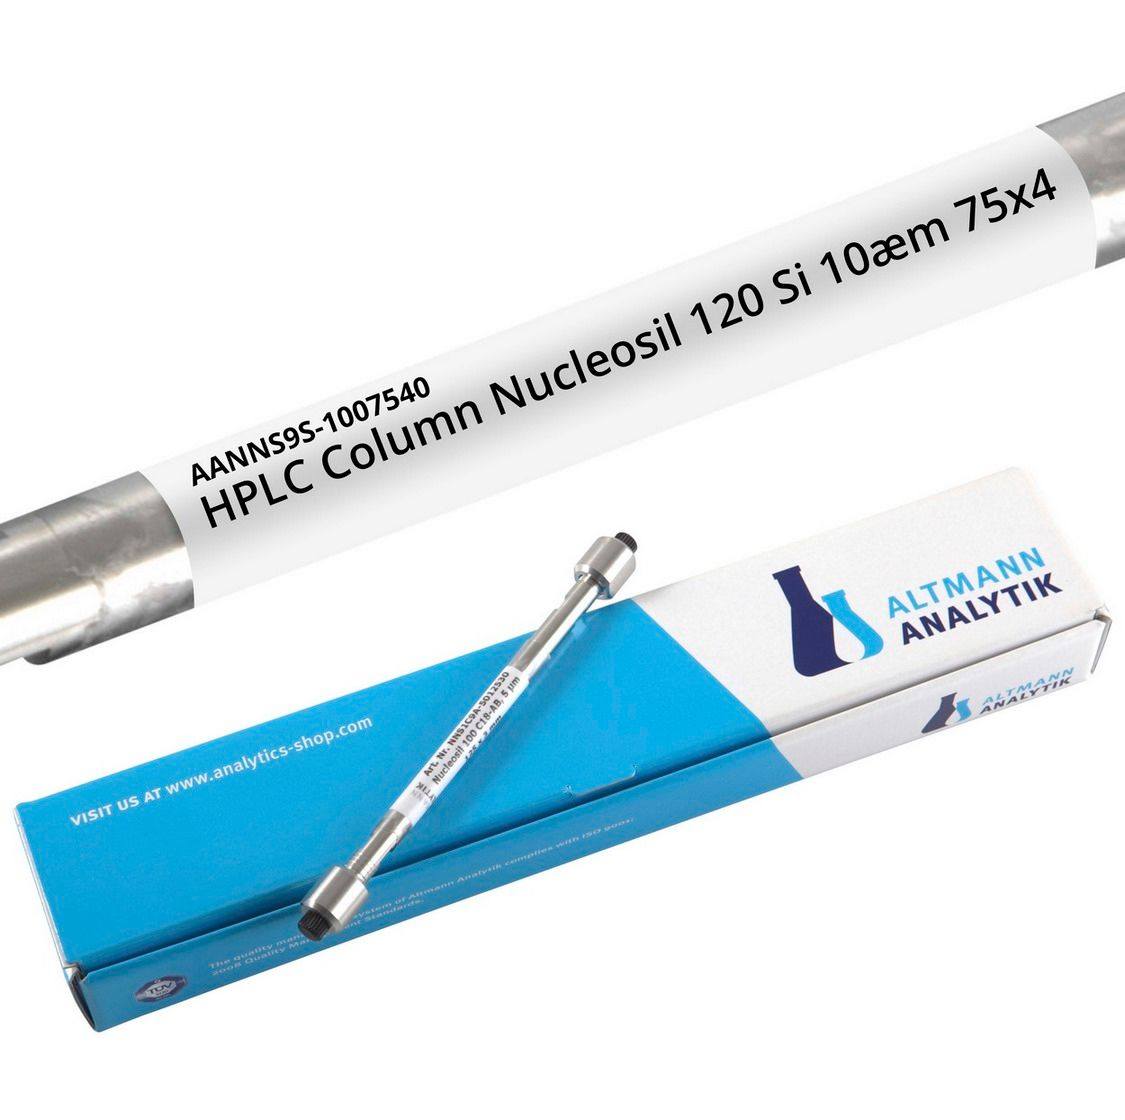 HPLC Column Nucleosil 120 Si 10µm 75x4 mm, 120A